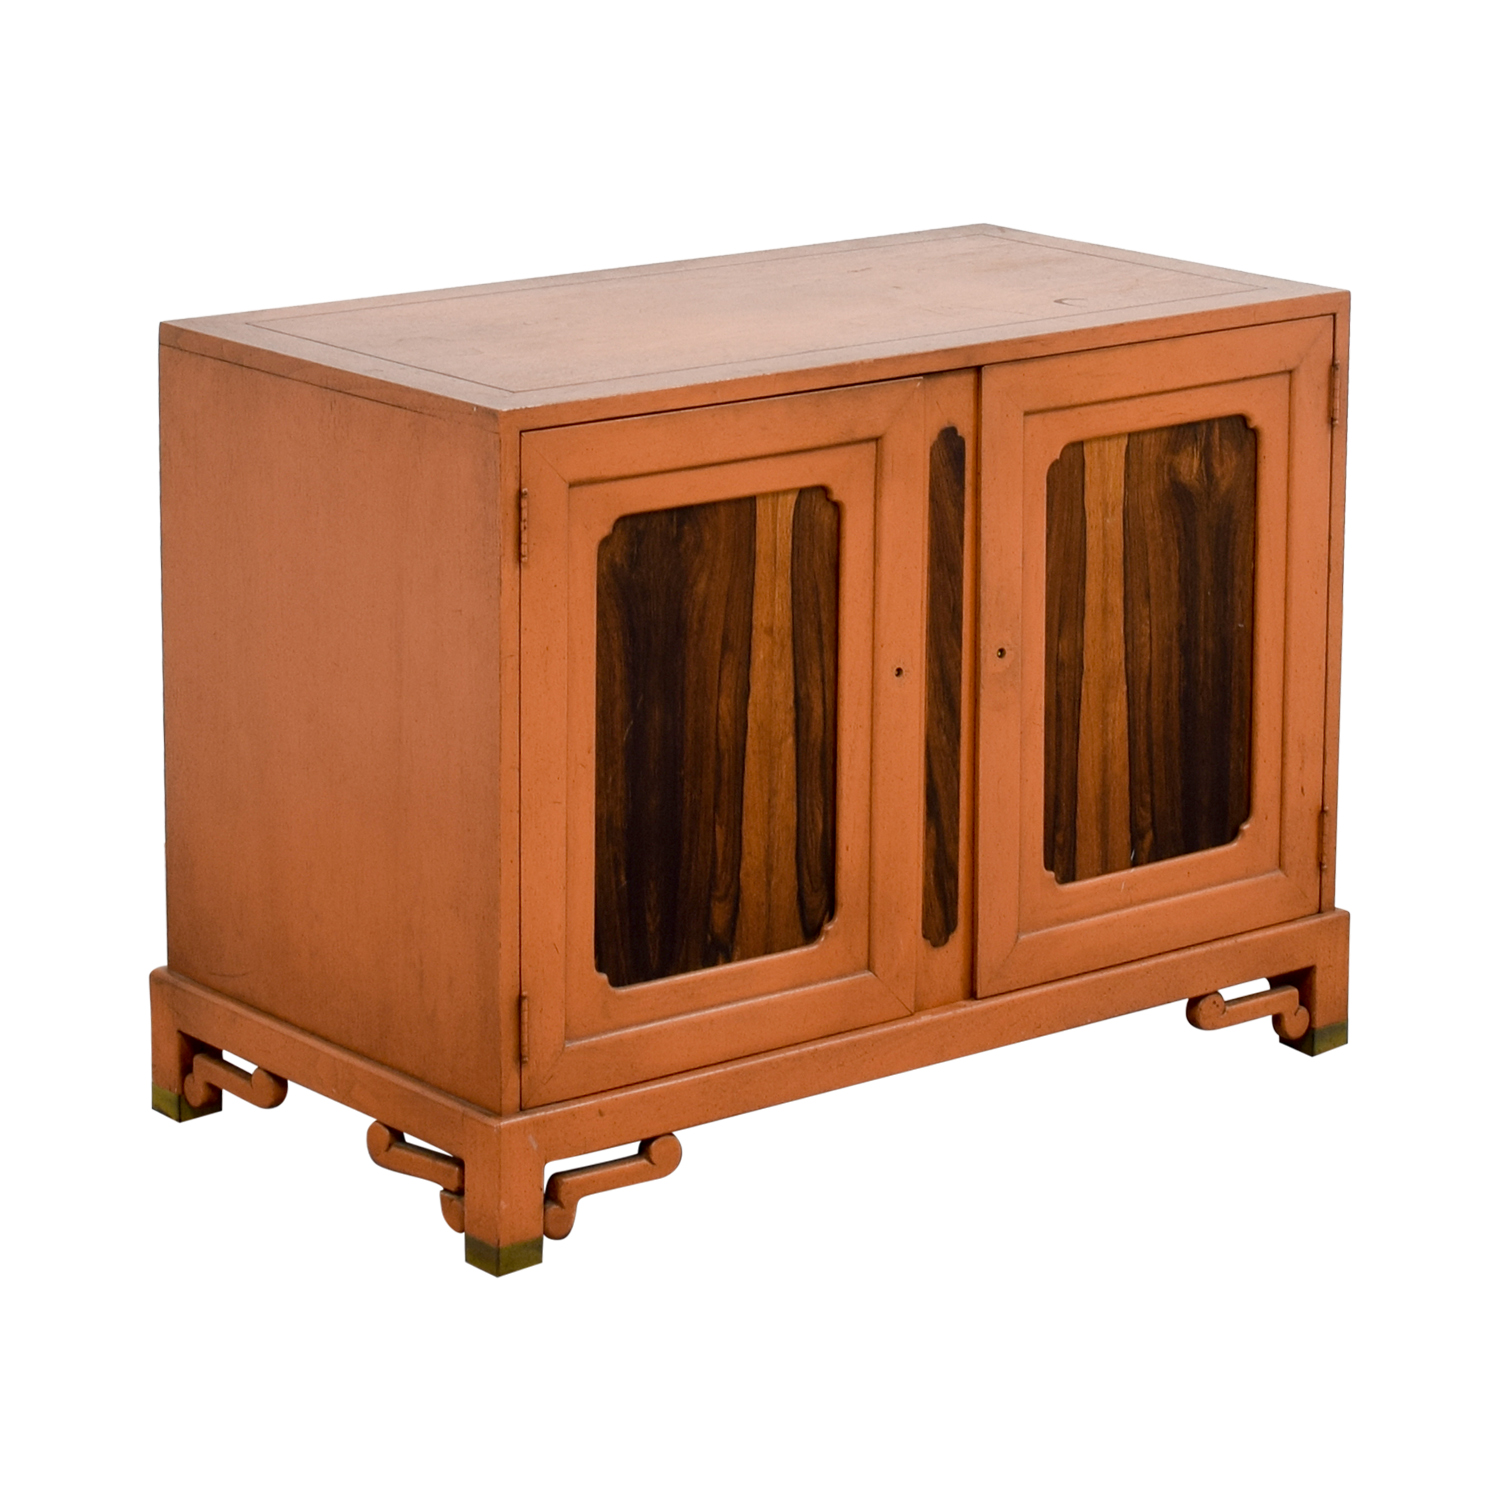 Unknown Wood Cabinet with Two Shelves Cabinets & Sideboards